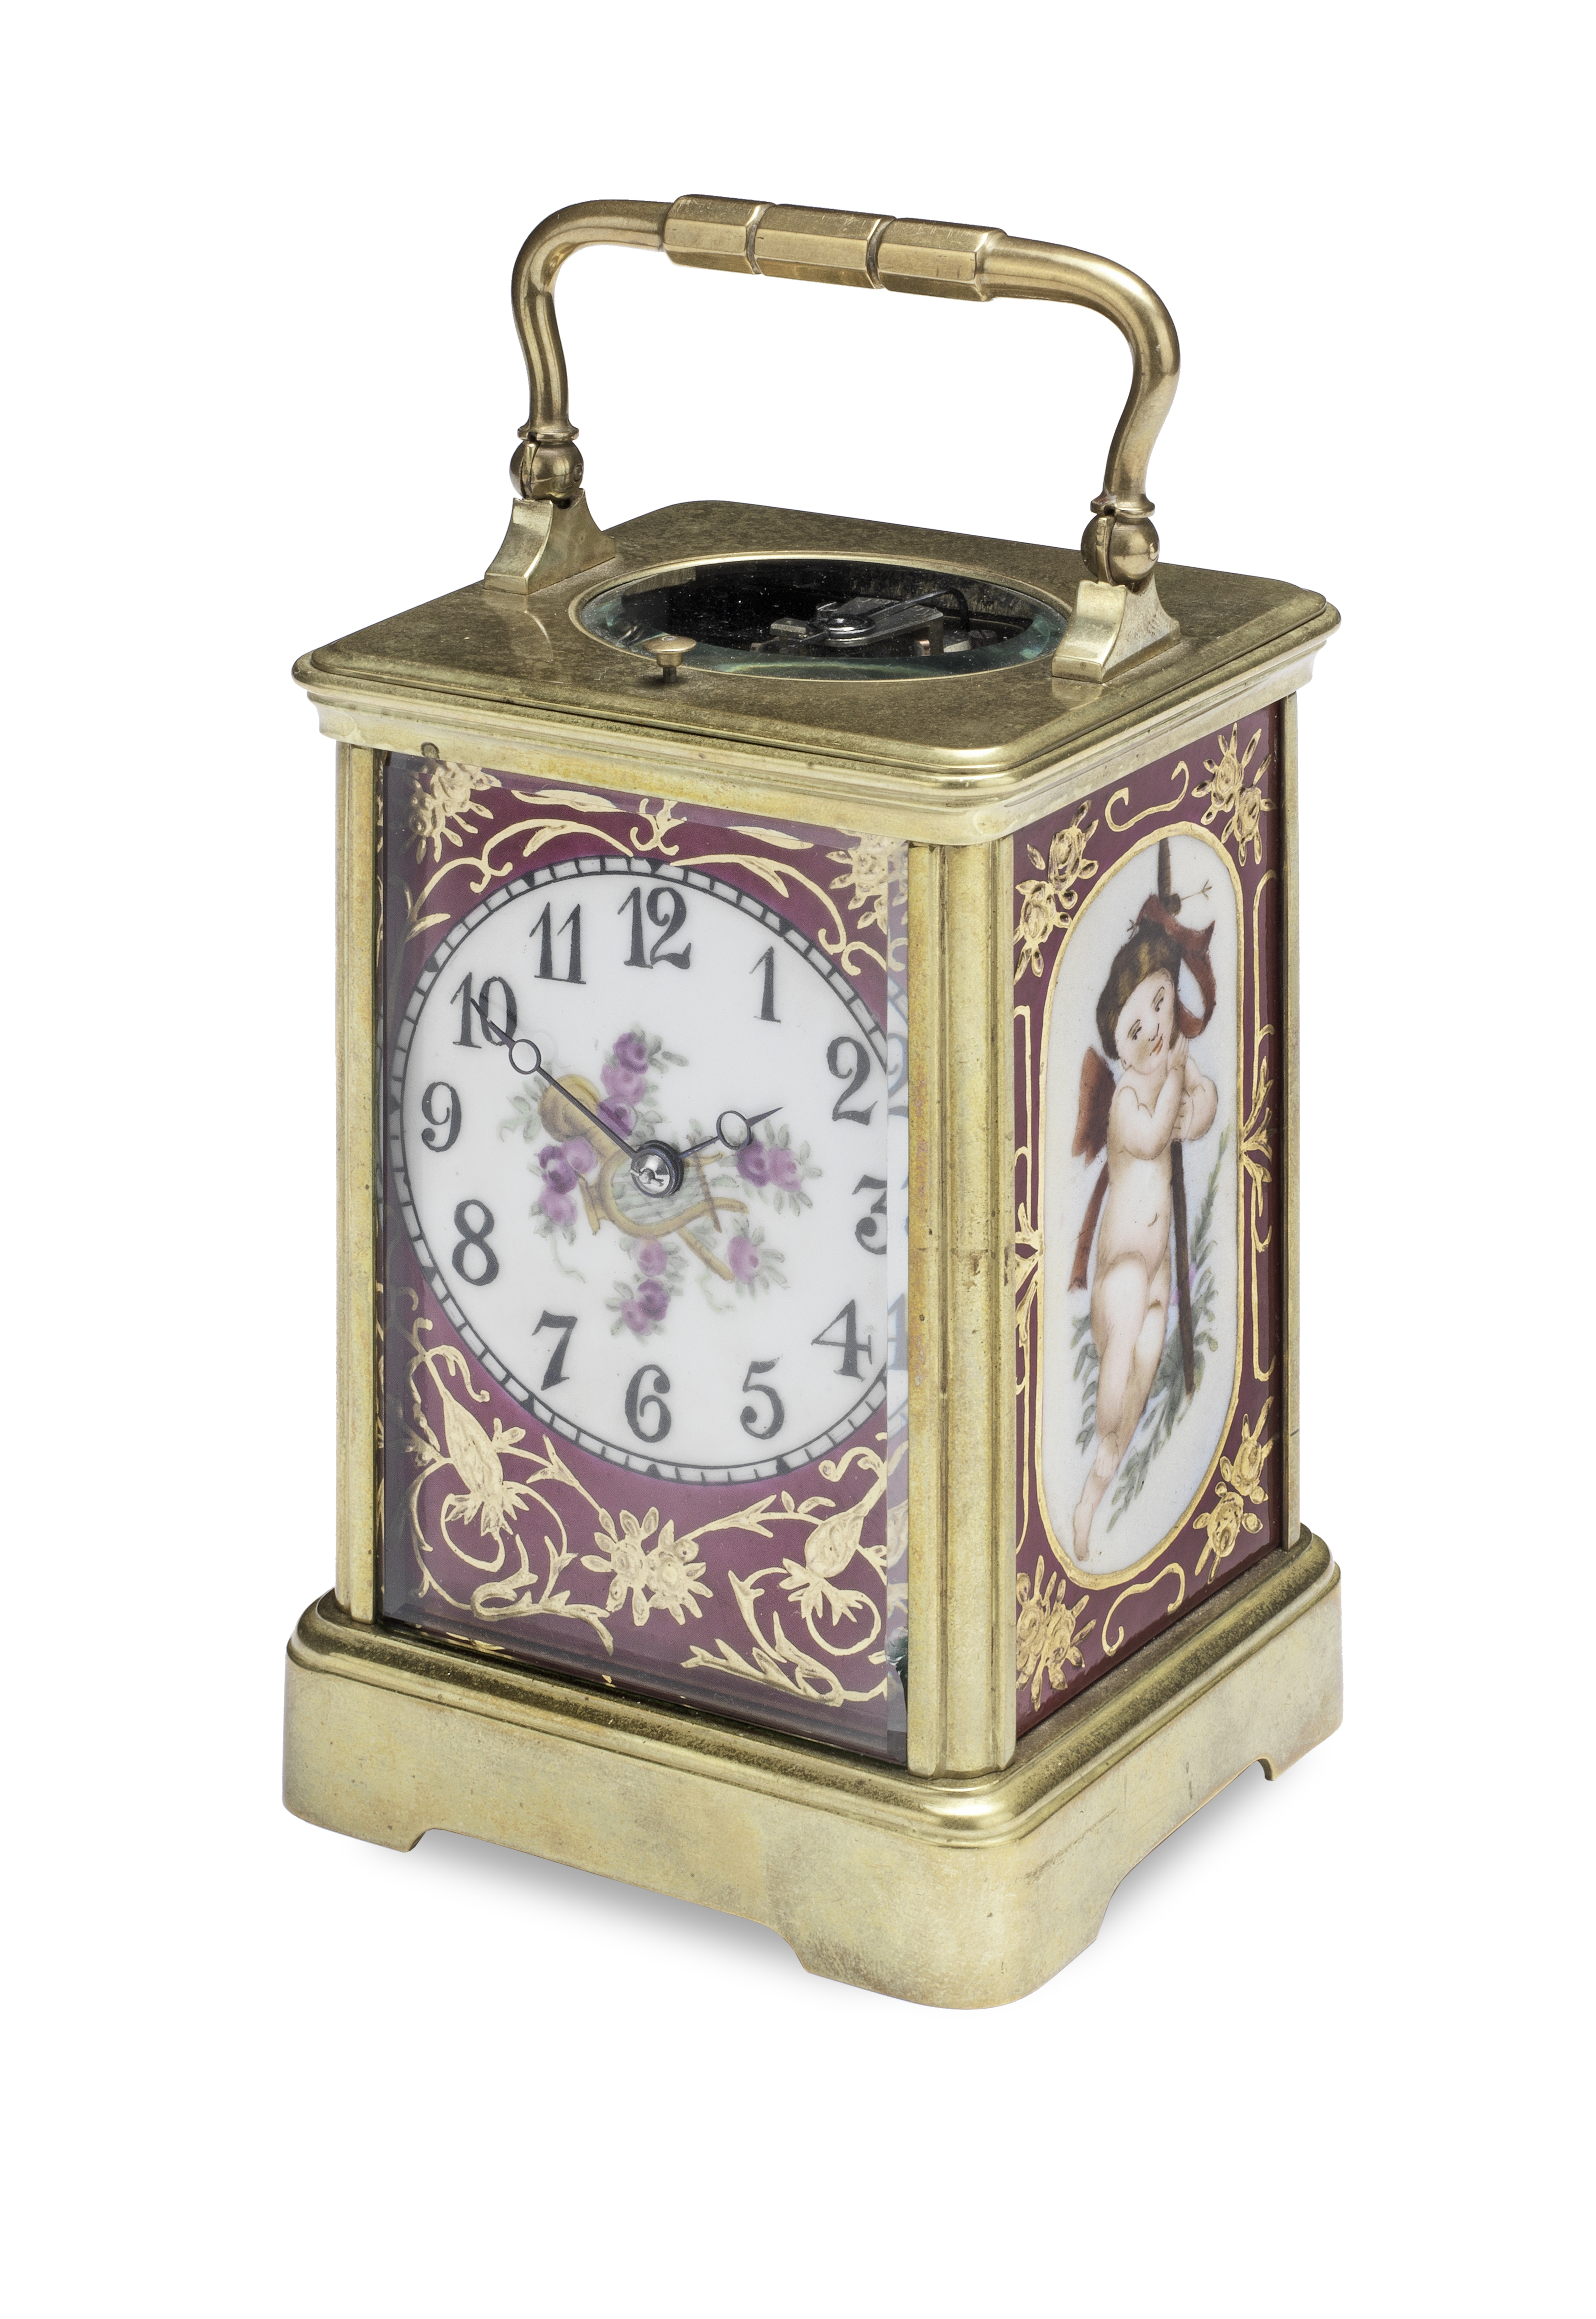 A porcelain panelled carriage clock the late 19th century movement stamped CET, the inset porcel...